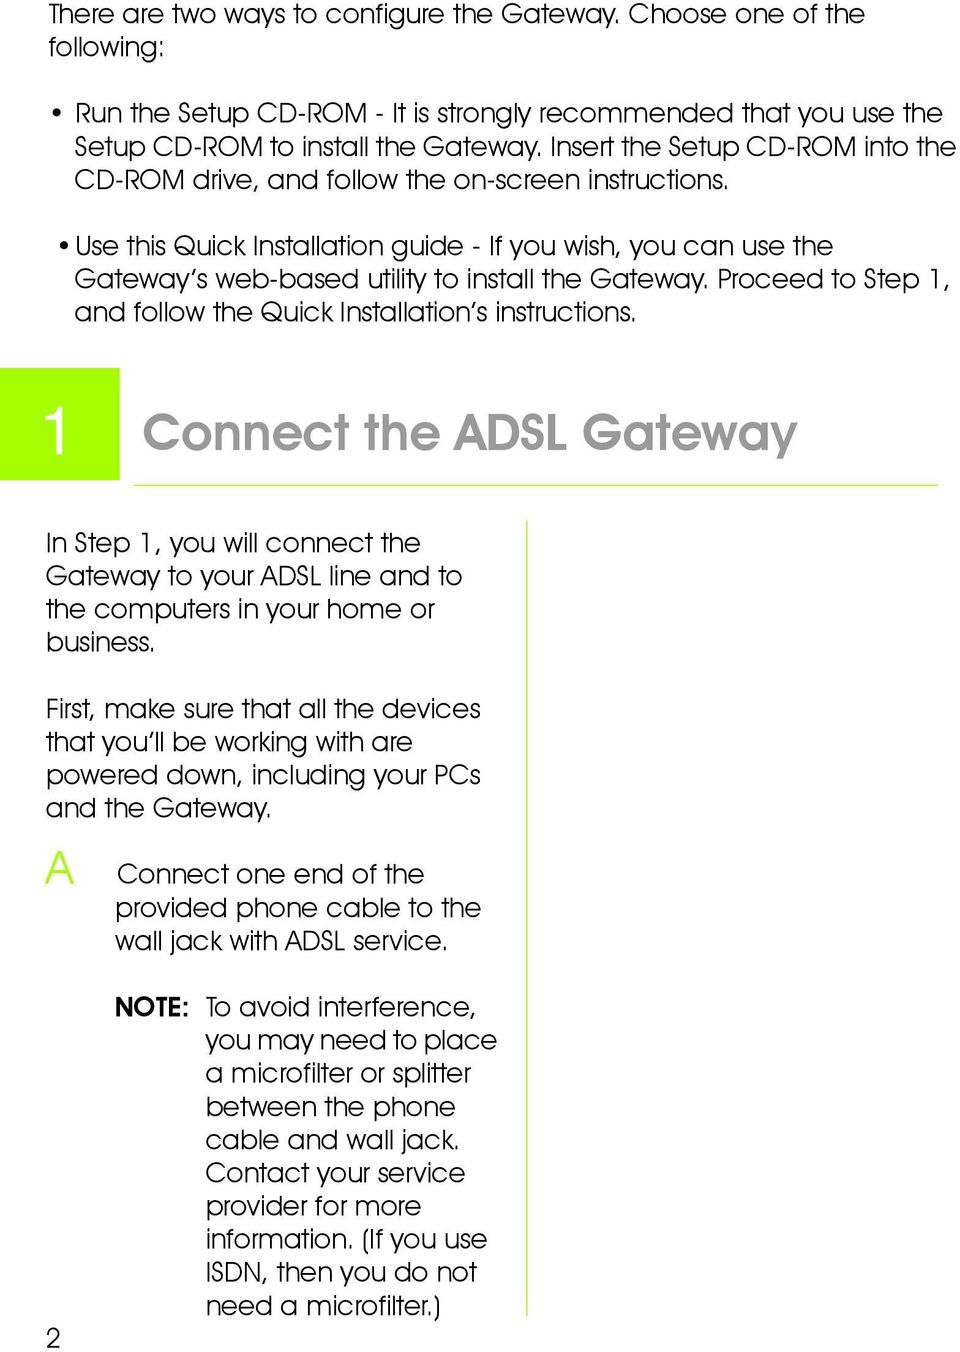 Use this Quick Installation guide - If you wish, you can use the Gateway s web-based utility to install the Gateway. Proceed to Step 1, and follow the Quick Installation s instructions.